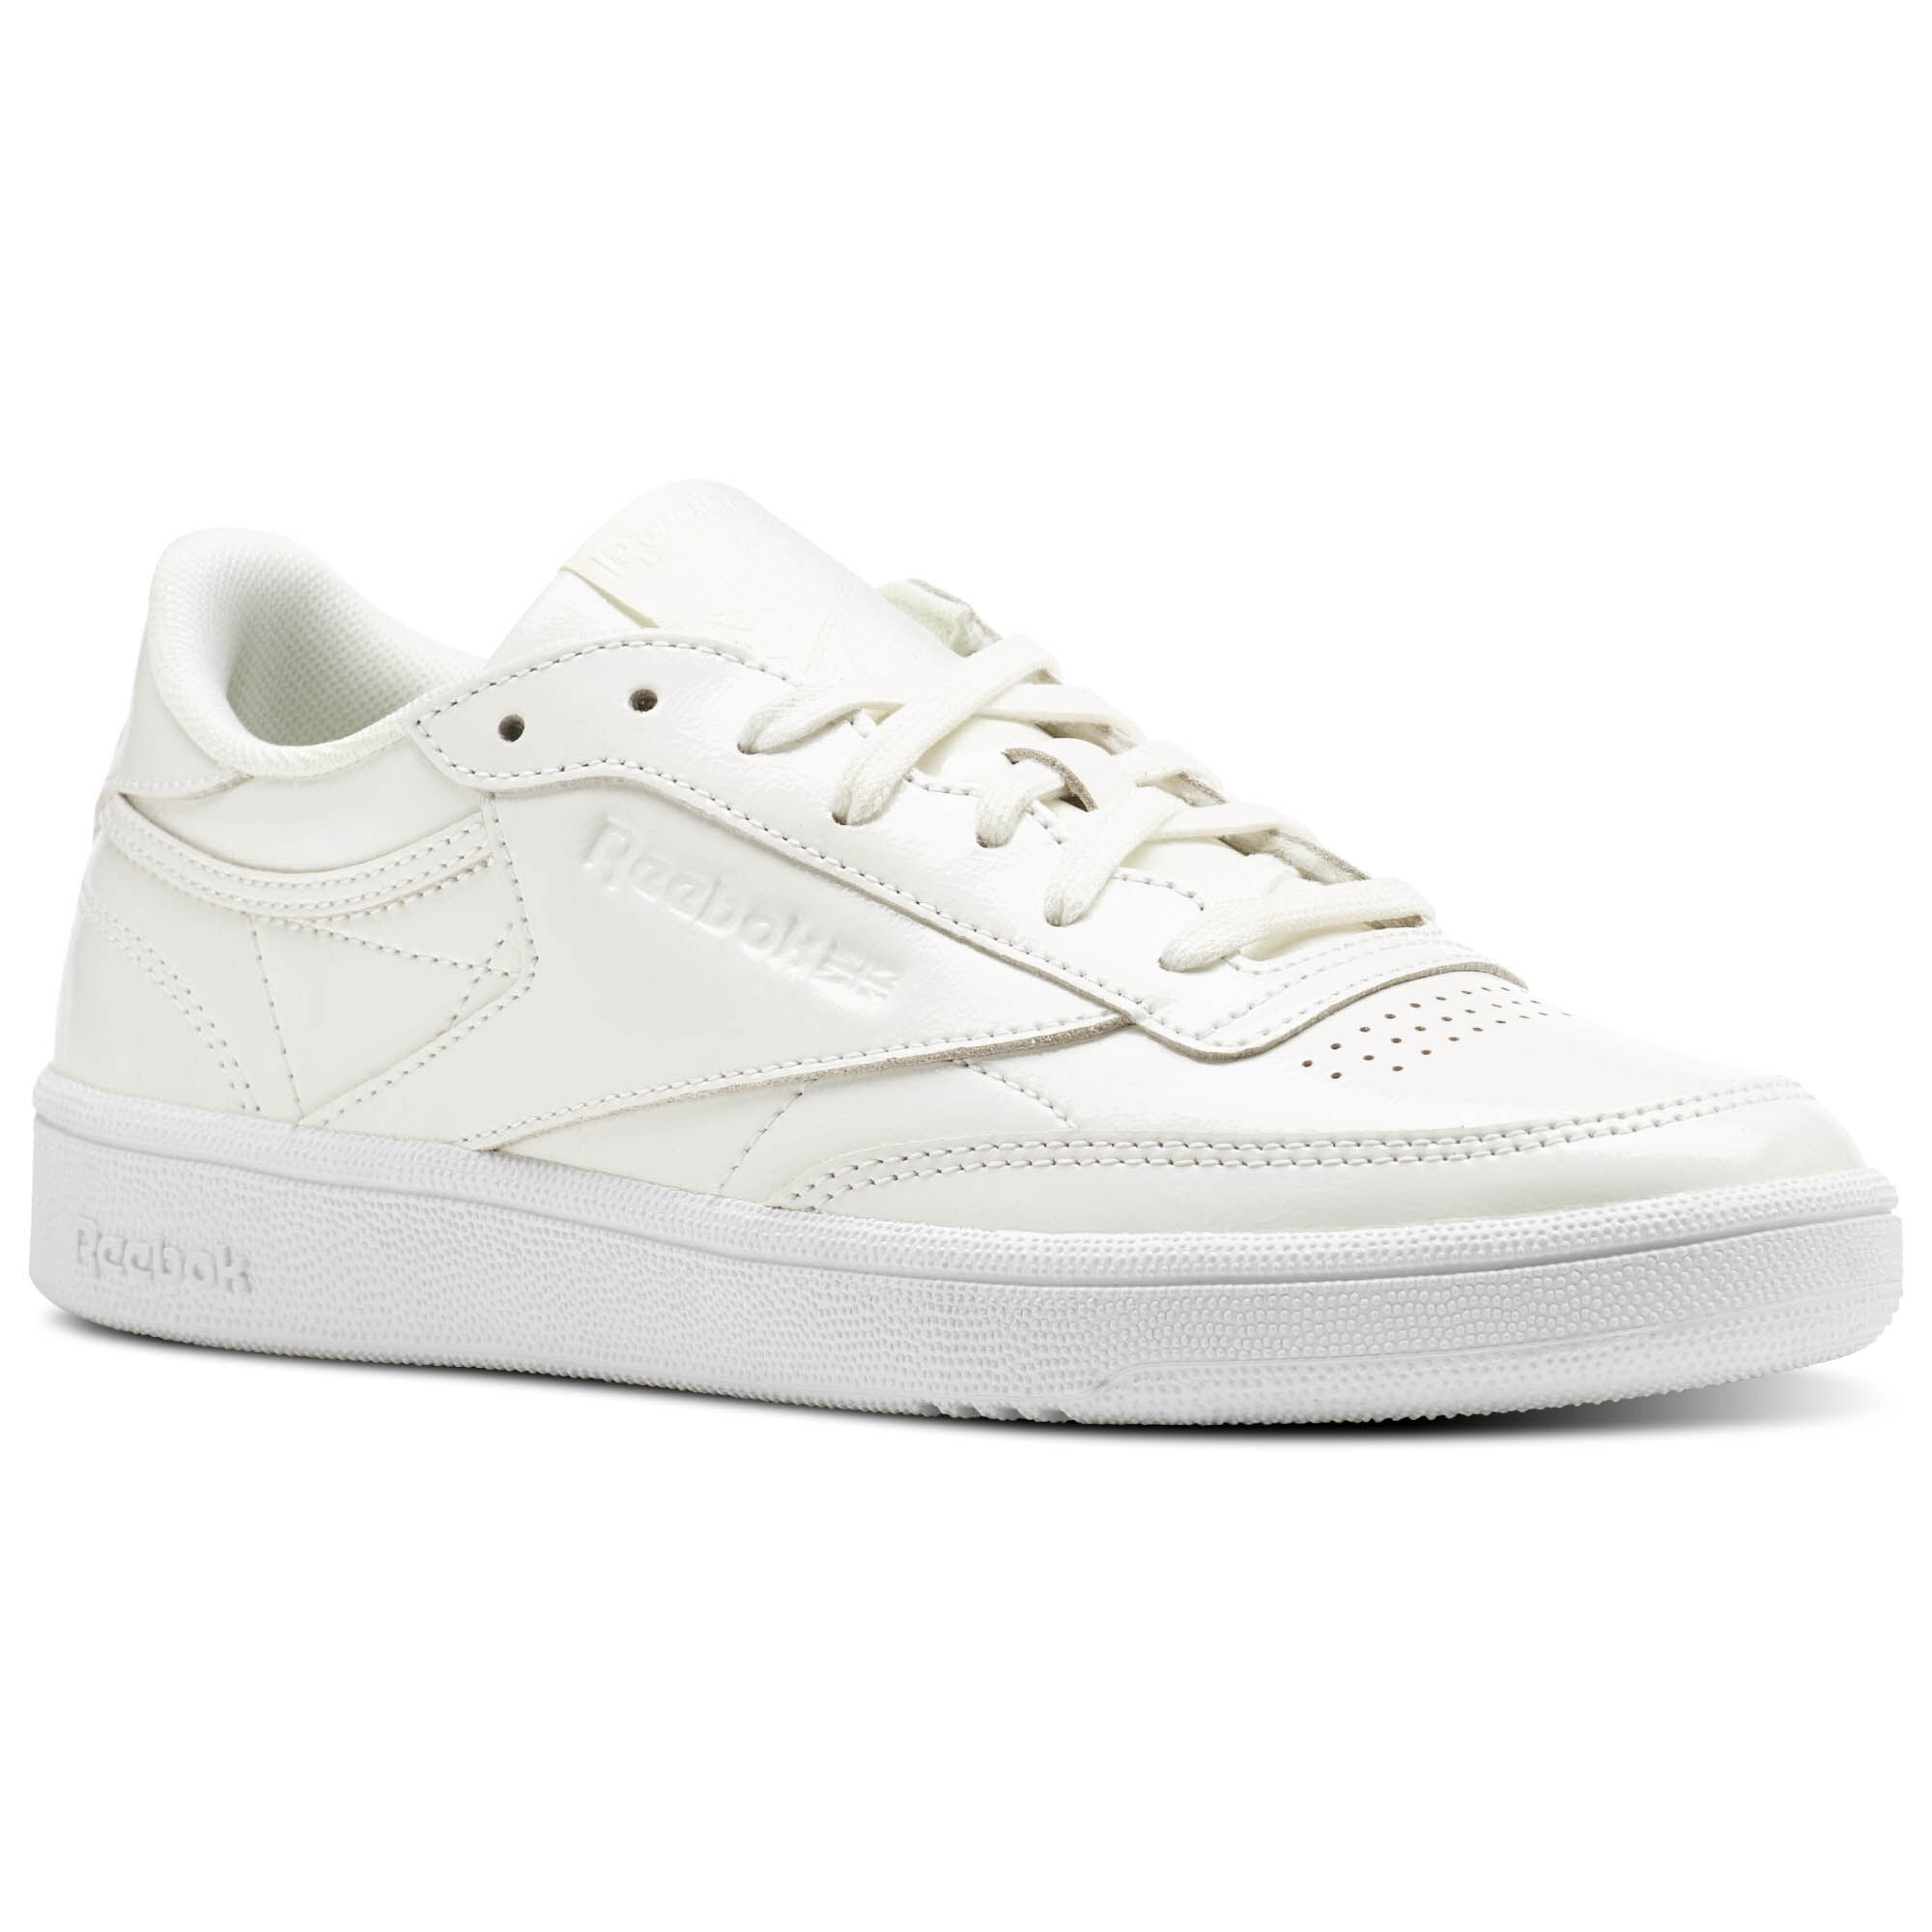 Club C 85 sneakers - White Reebok